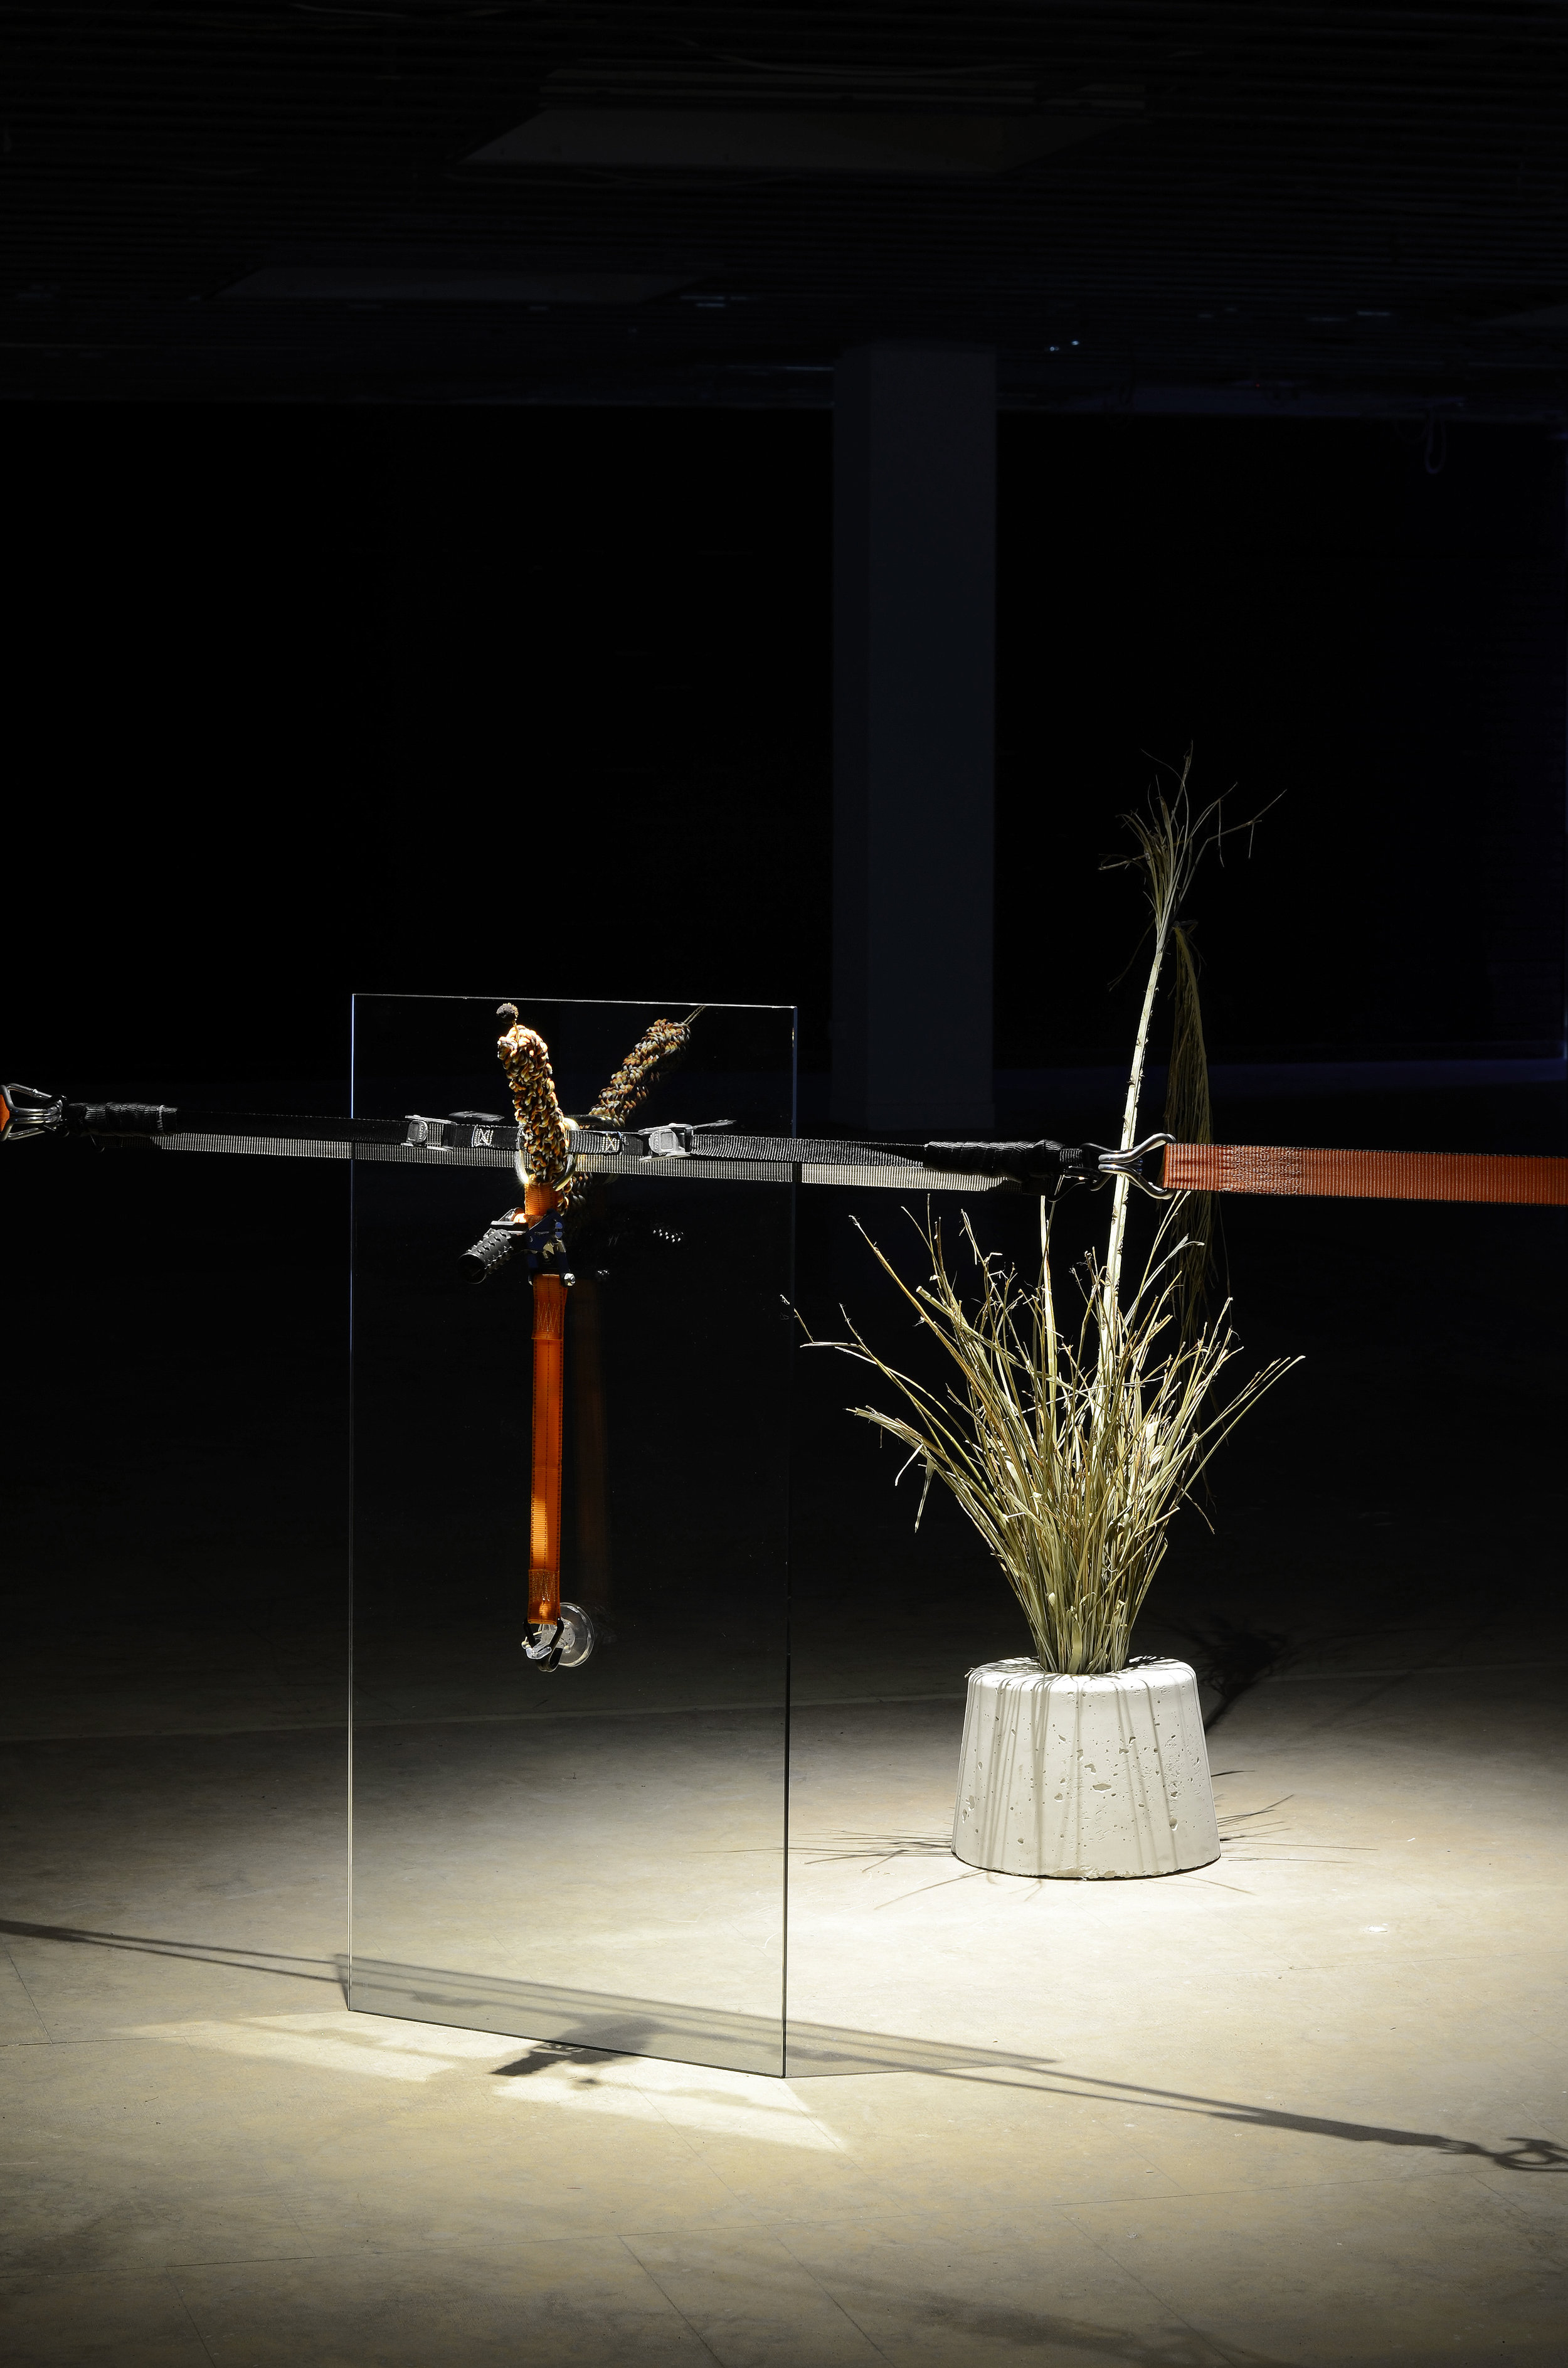 Anna McMahon,  Untitled # 6  from the series  There's no easy way to say this , 2016, glass, elastic tie down, three way tie down, leucadendron, dog toy, clear suction hook, palm, concrete bolster, installation view, dimensions variable. Image courtesy of Success. Photography: Dan McCabe